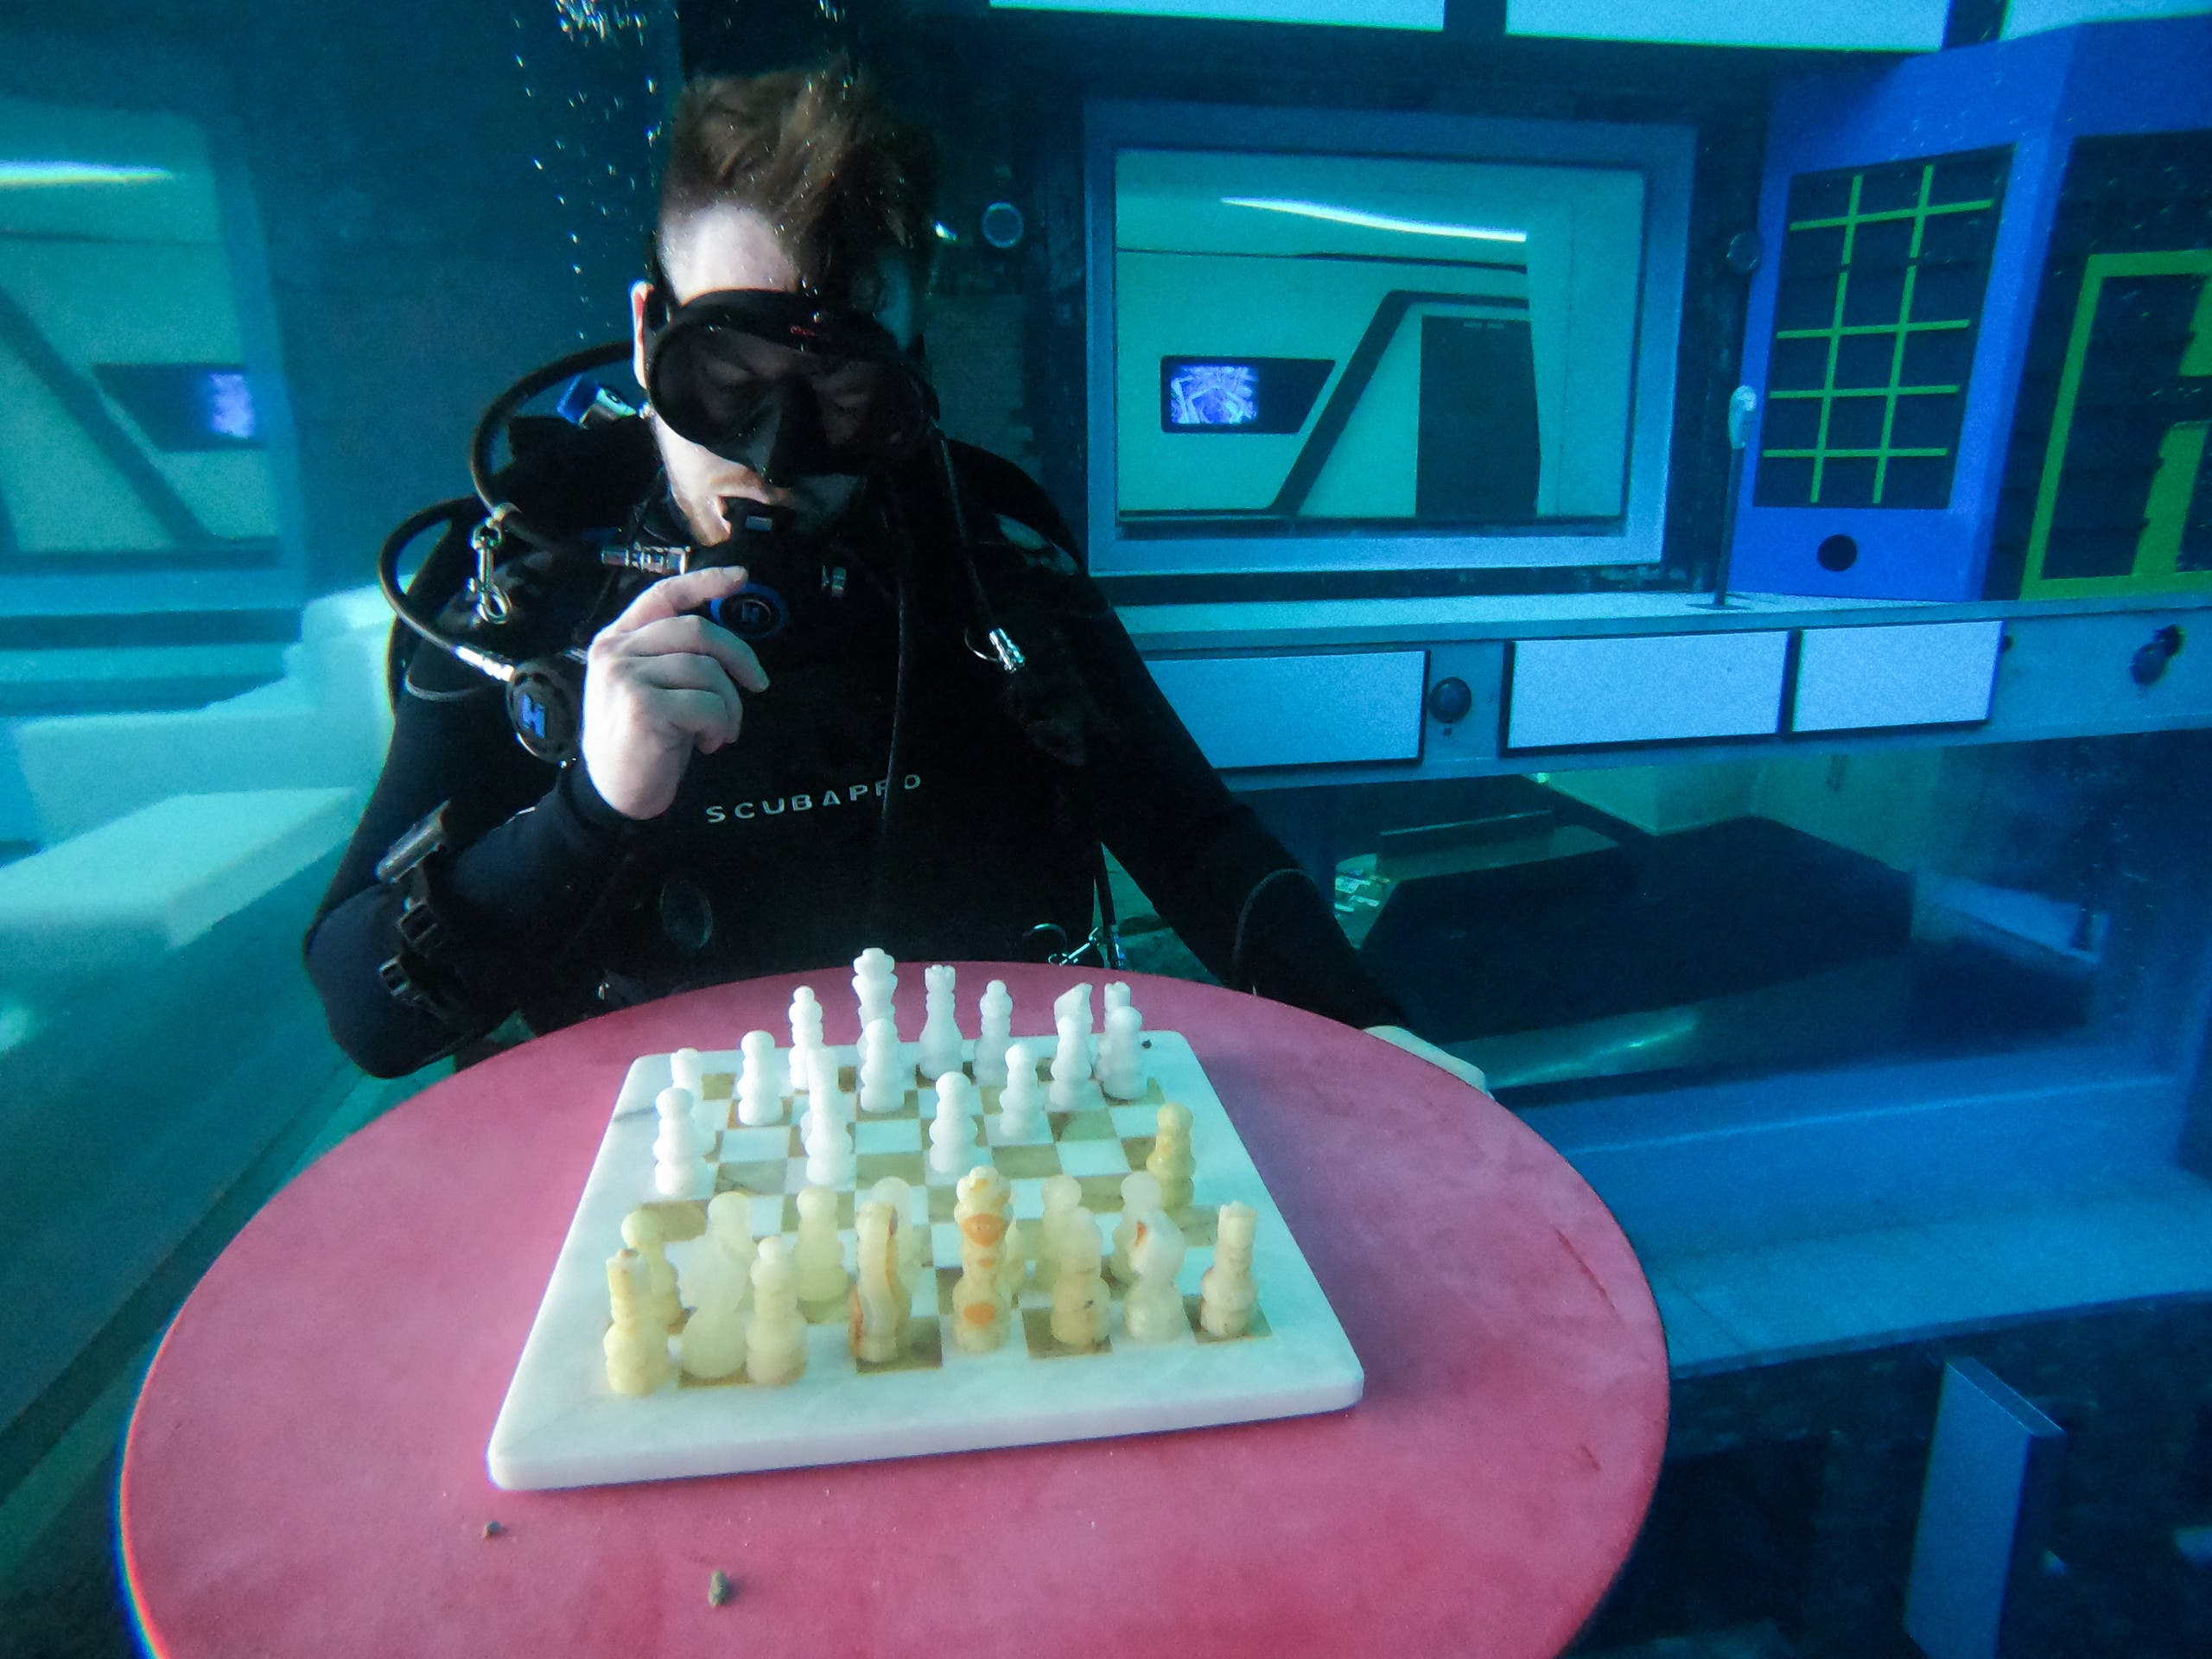 A diver plays mock chess as he experiences Deep Dive Dubai, the deepest swimming pool in the world reaching 60m, in the United Arab Emirates, on July 10, 2021. (AFP)